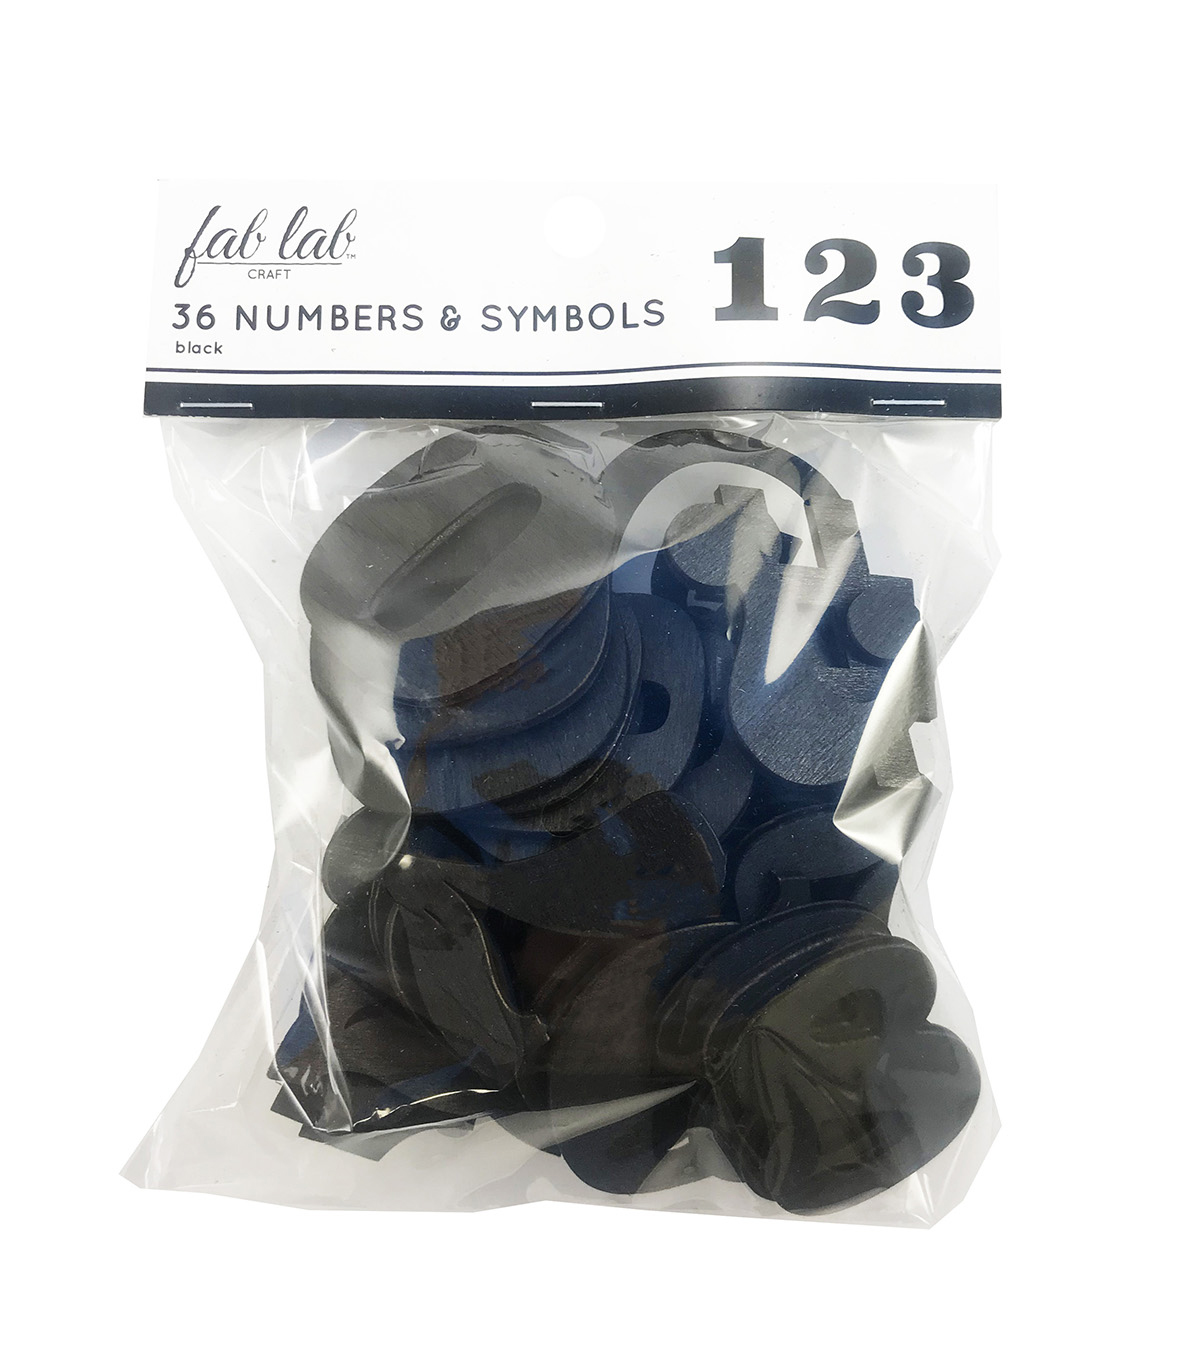 Fab Lab Craft 36 pk Numbers & Symbols-Black